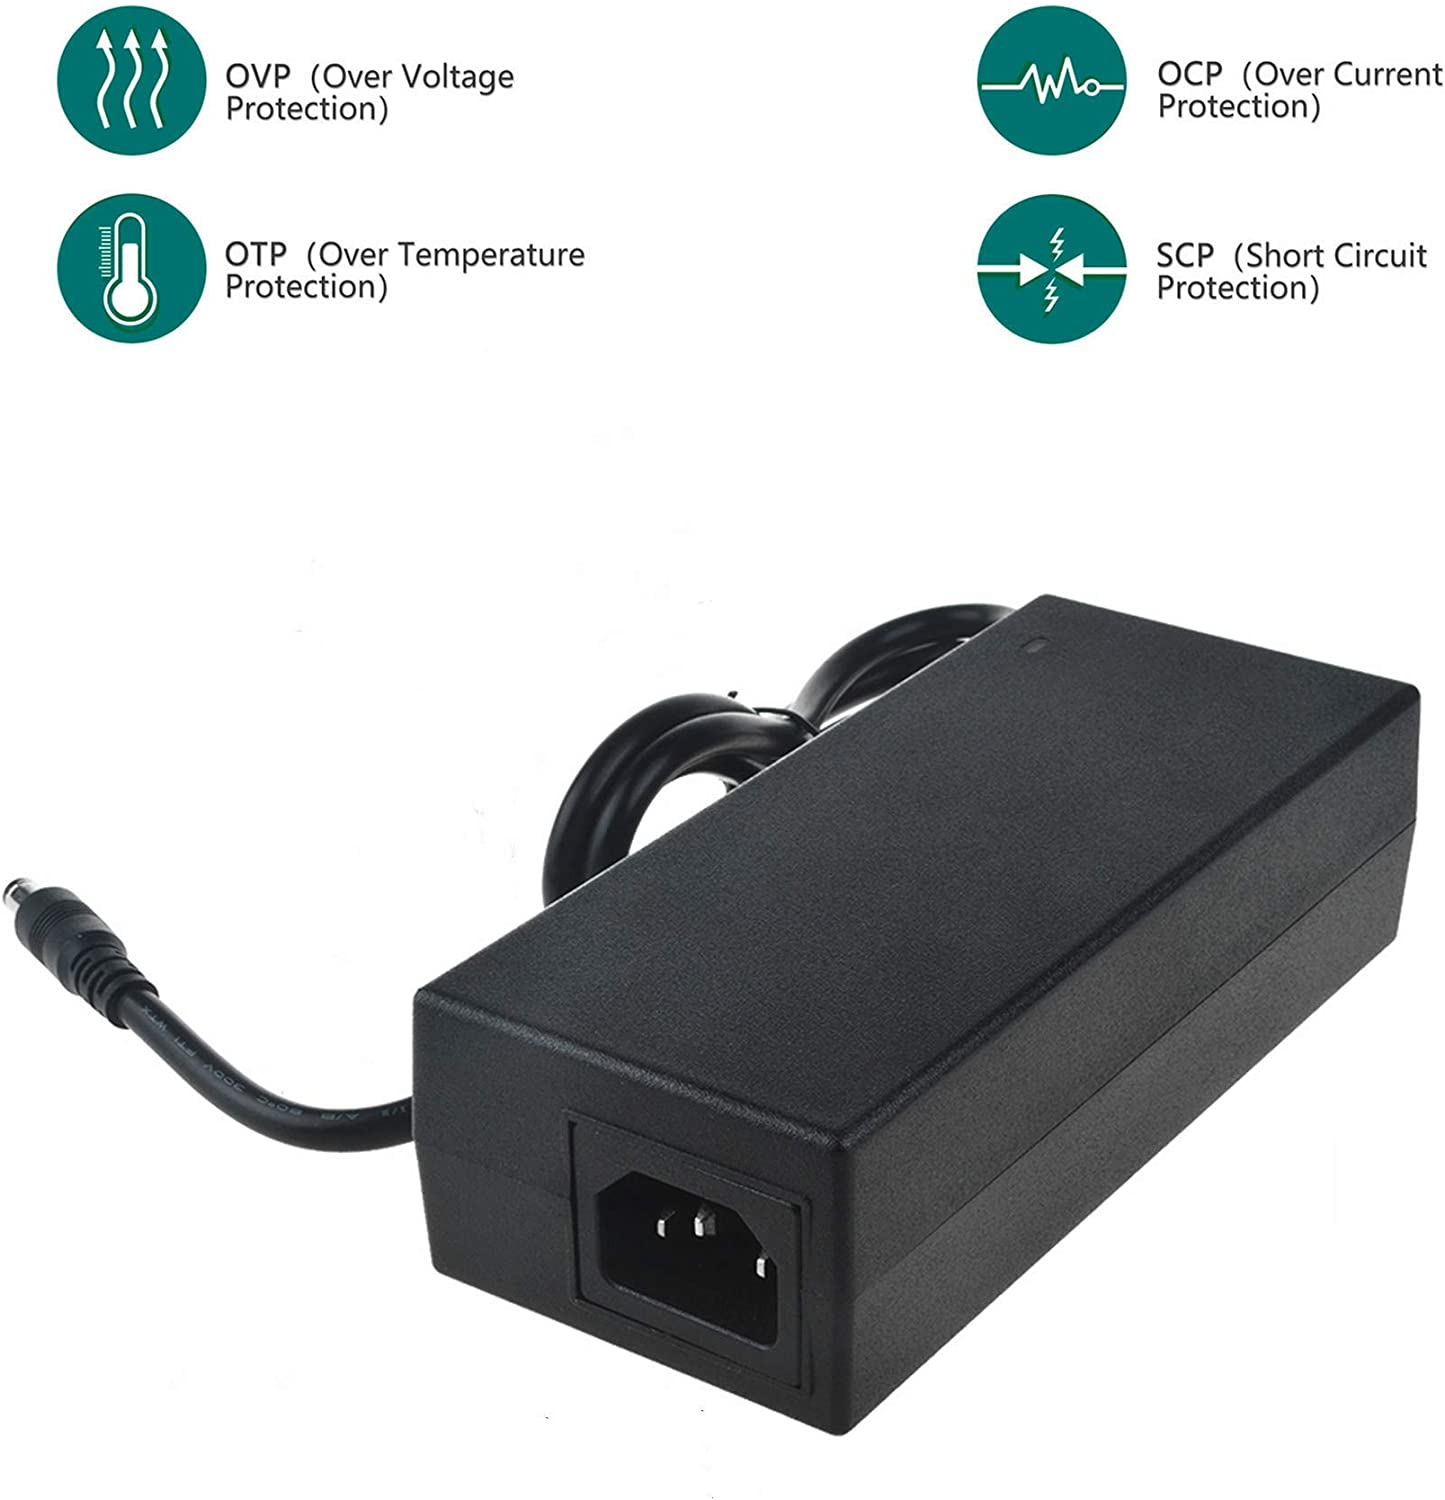 SLLEA 12V AC//DC Adapter for Philips Pro M Series 1015642 CPAP Machine 50 Series System One REMstar Auto A-Flex 550 REF 550P 1051158 1024563 AA24750L 001 1058190 MW115RA1200N05 PSU